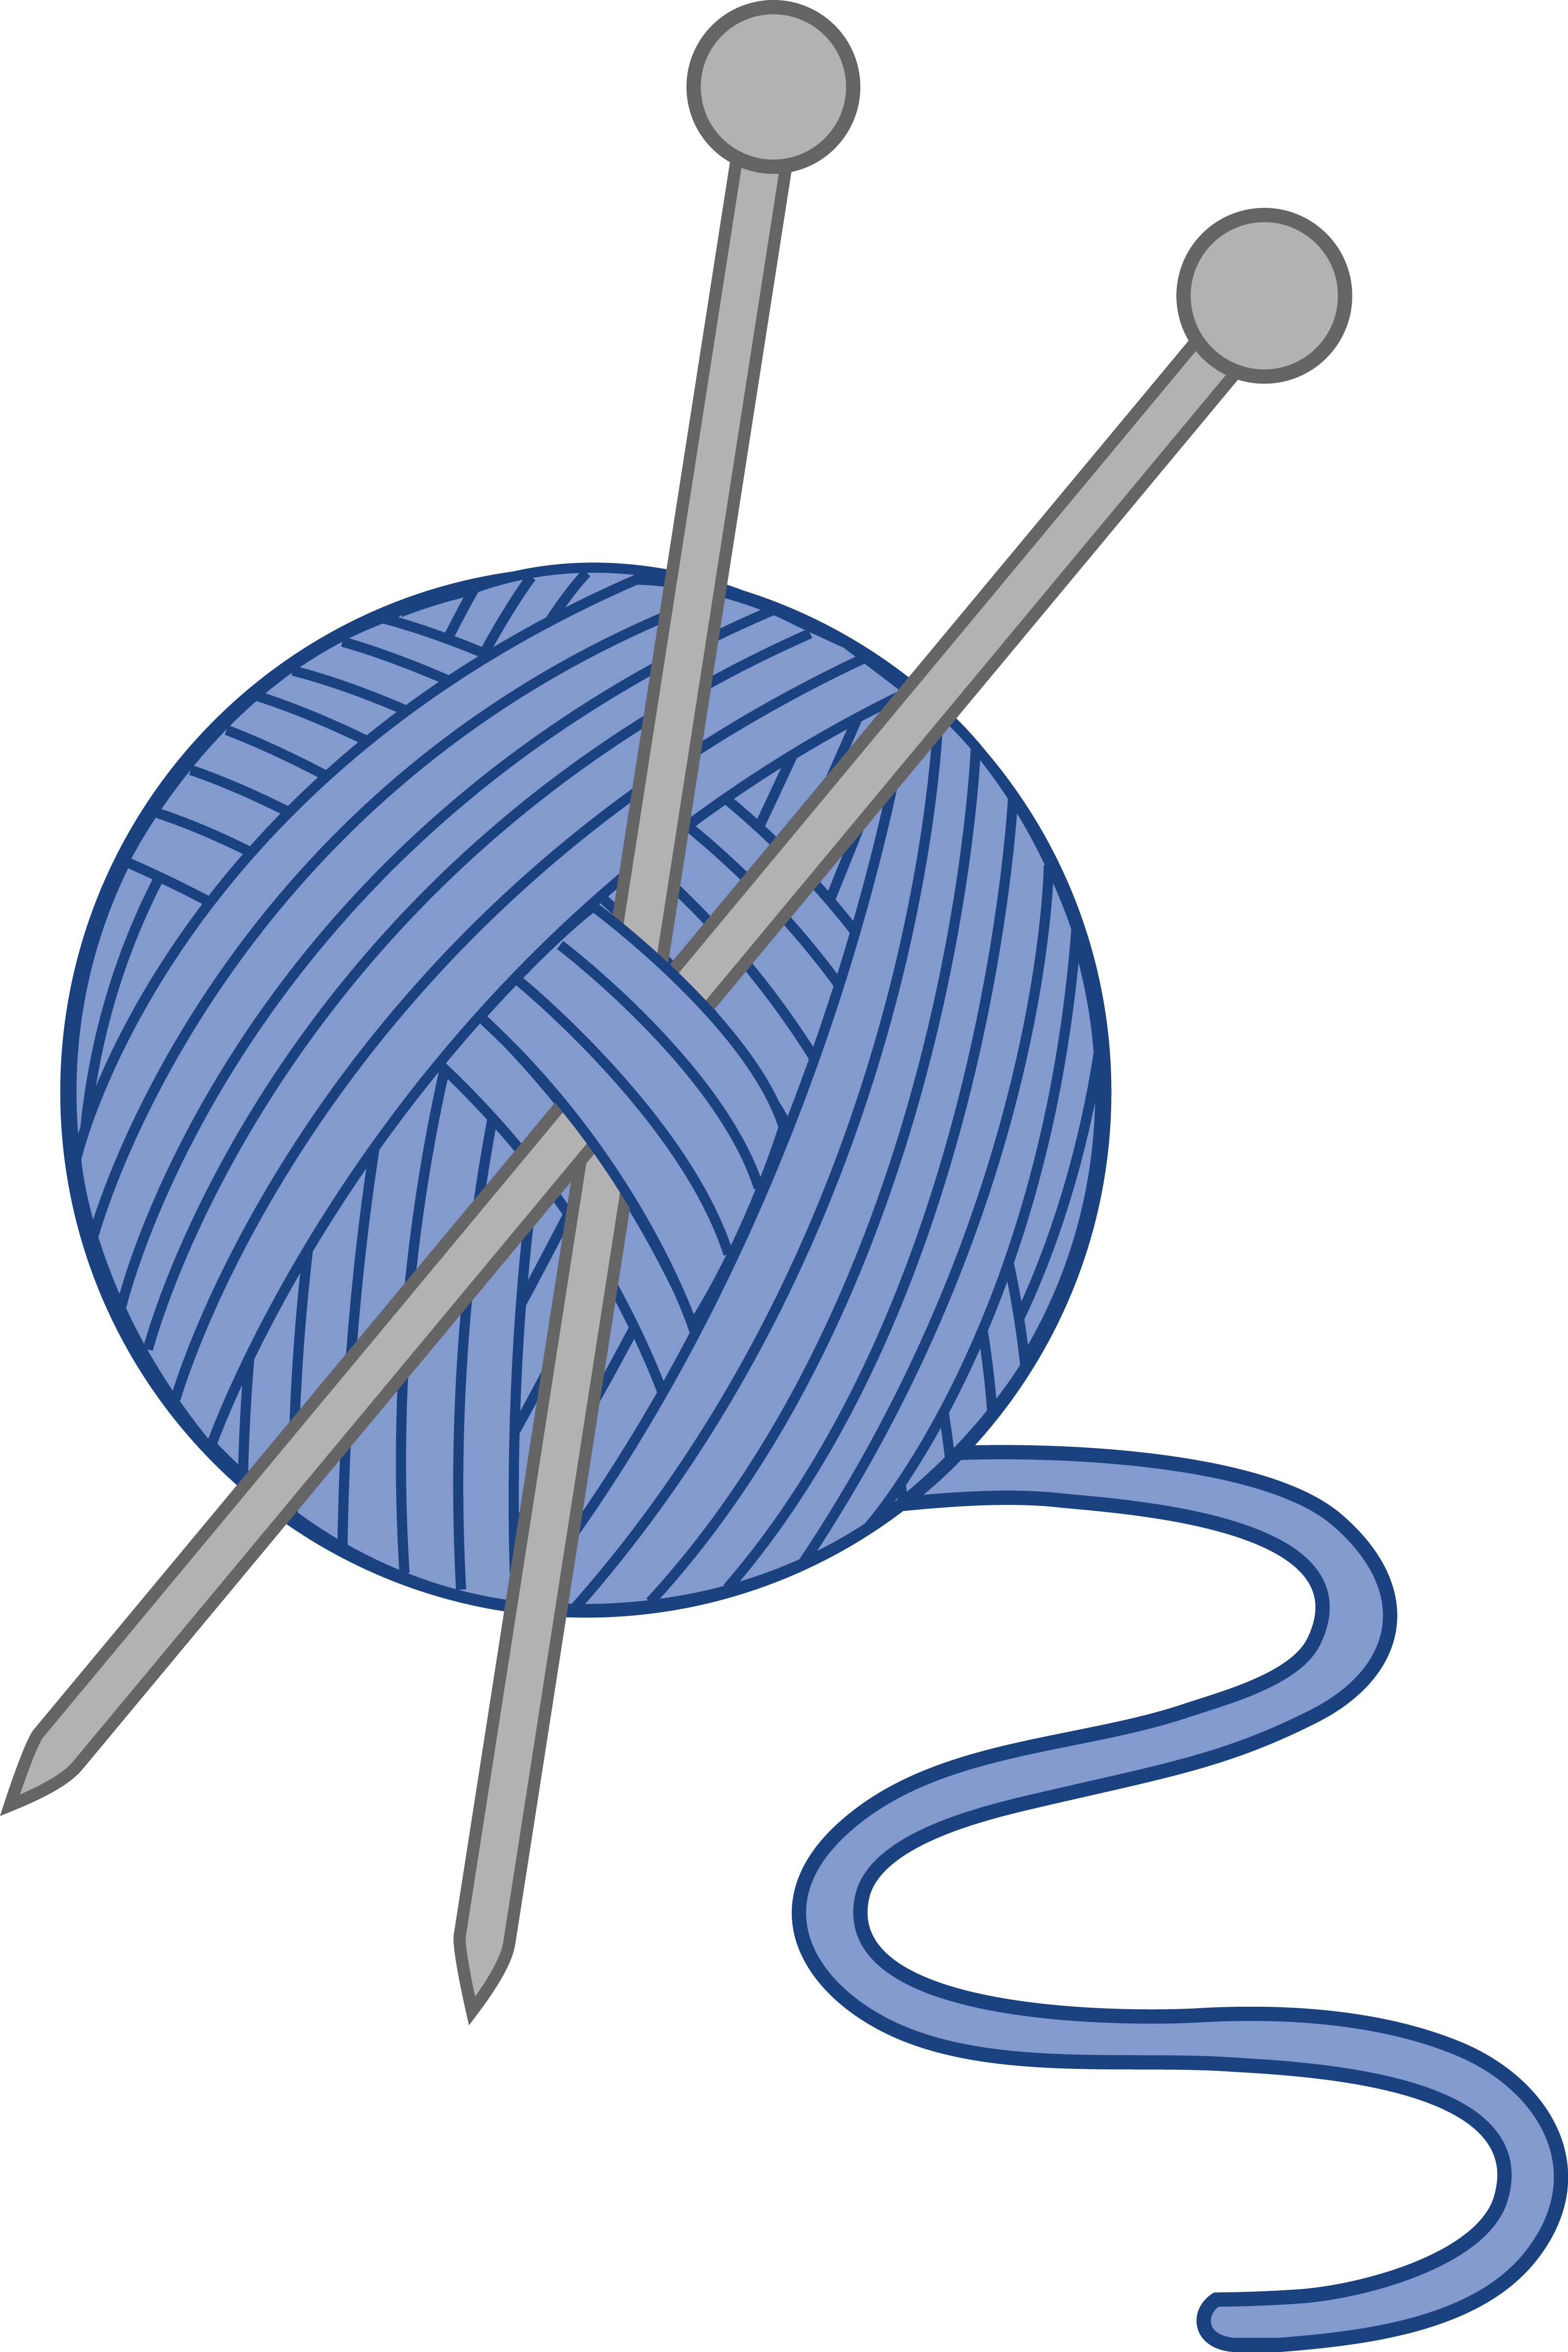 Yarn clipart free png library stock Free yarn clipart 5 » Clipart Portal png library stock